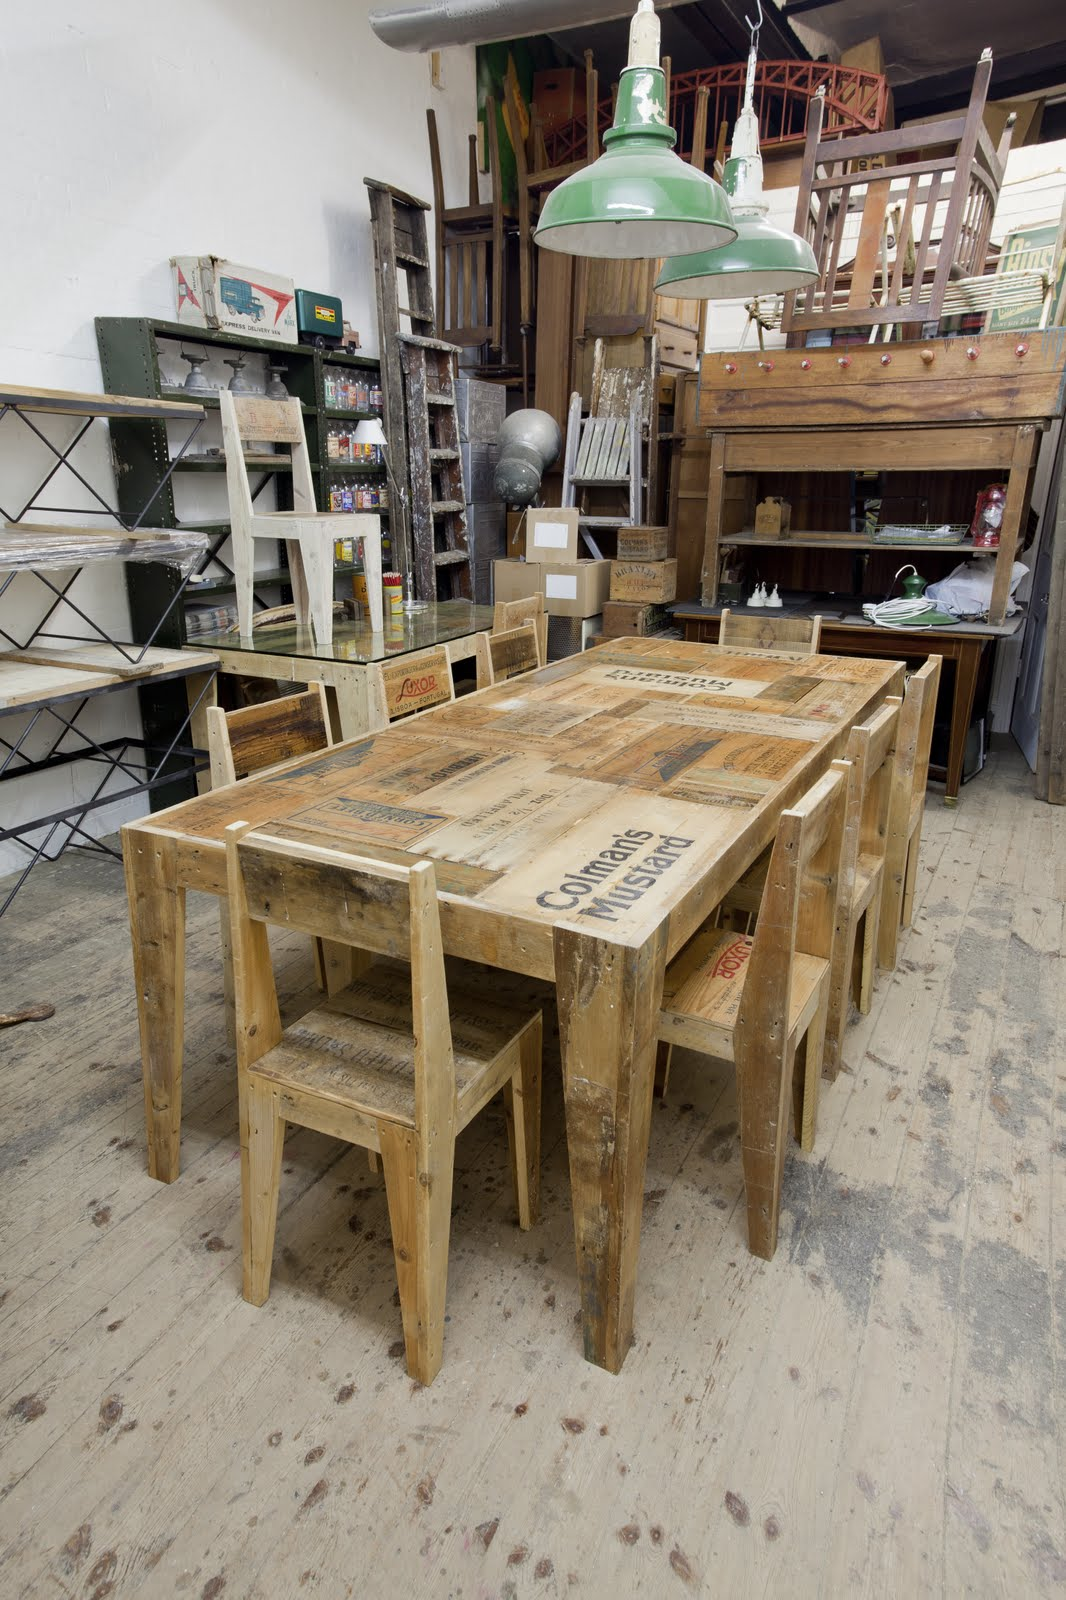 Styling and Salvage crate furniture collection